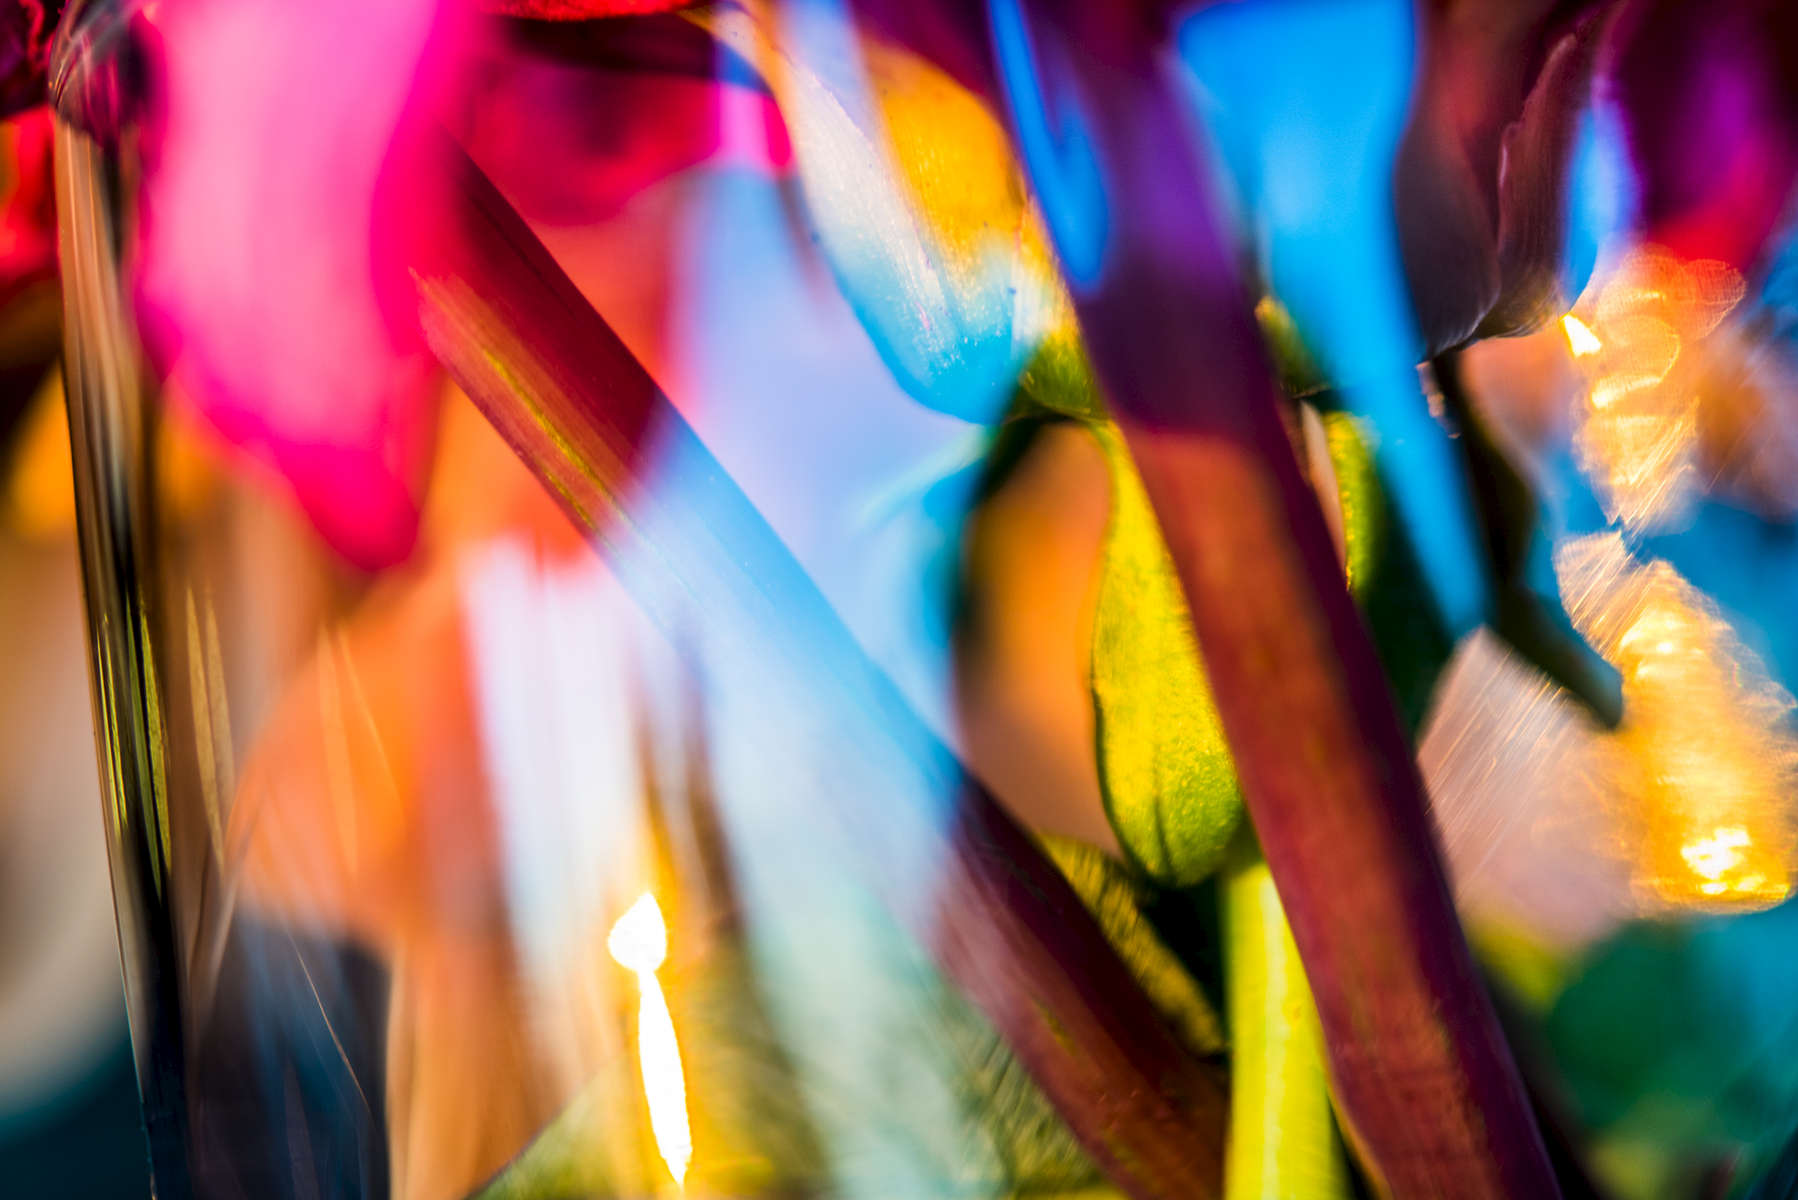 Flower Sunset Abstract 1